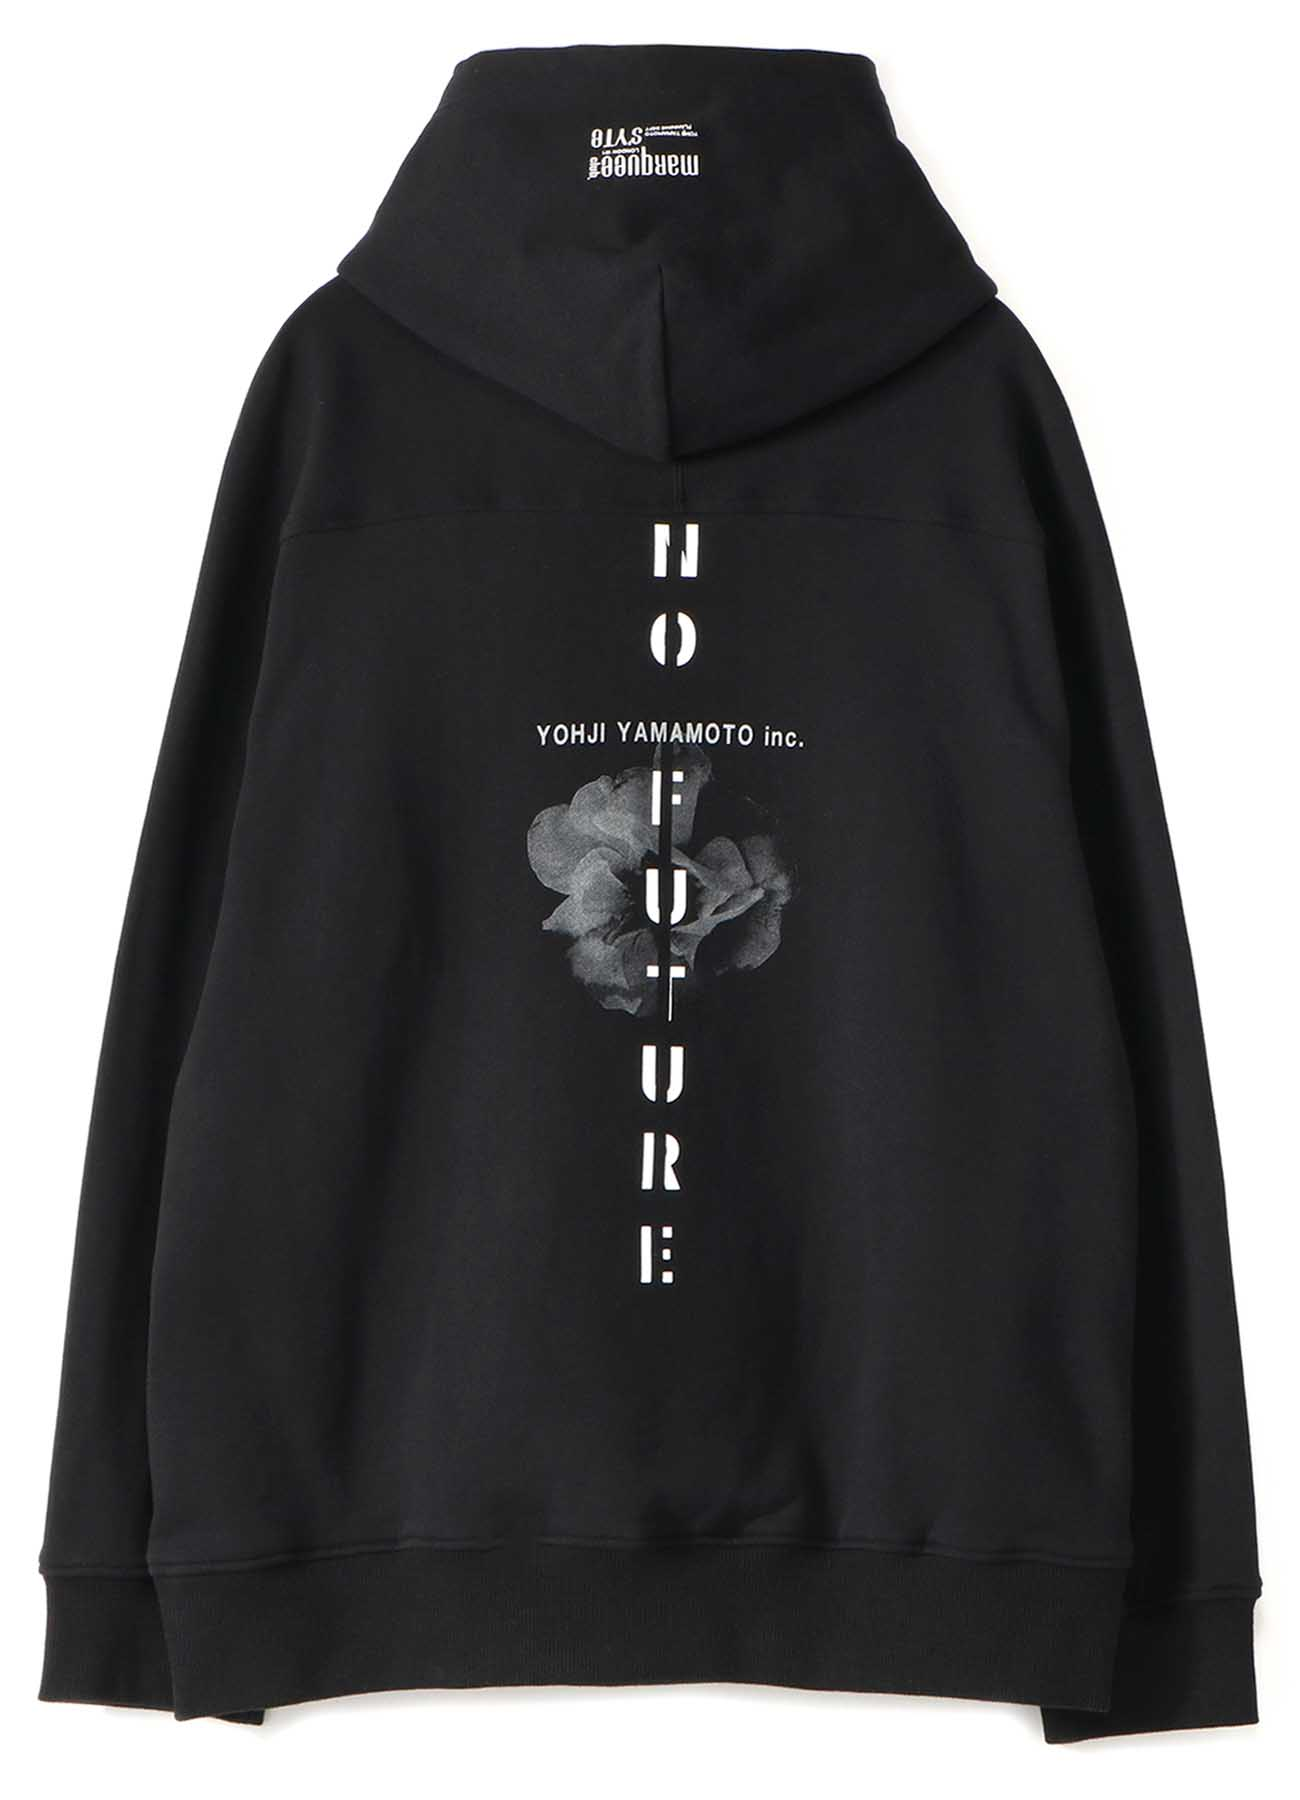 S'YTE × marquee club(R) French Terry Stitch Work Print Hoodie